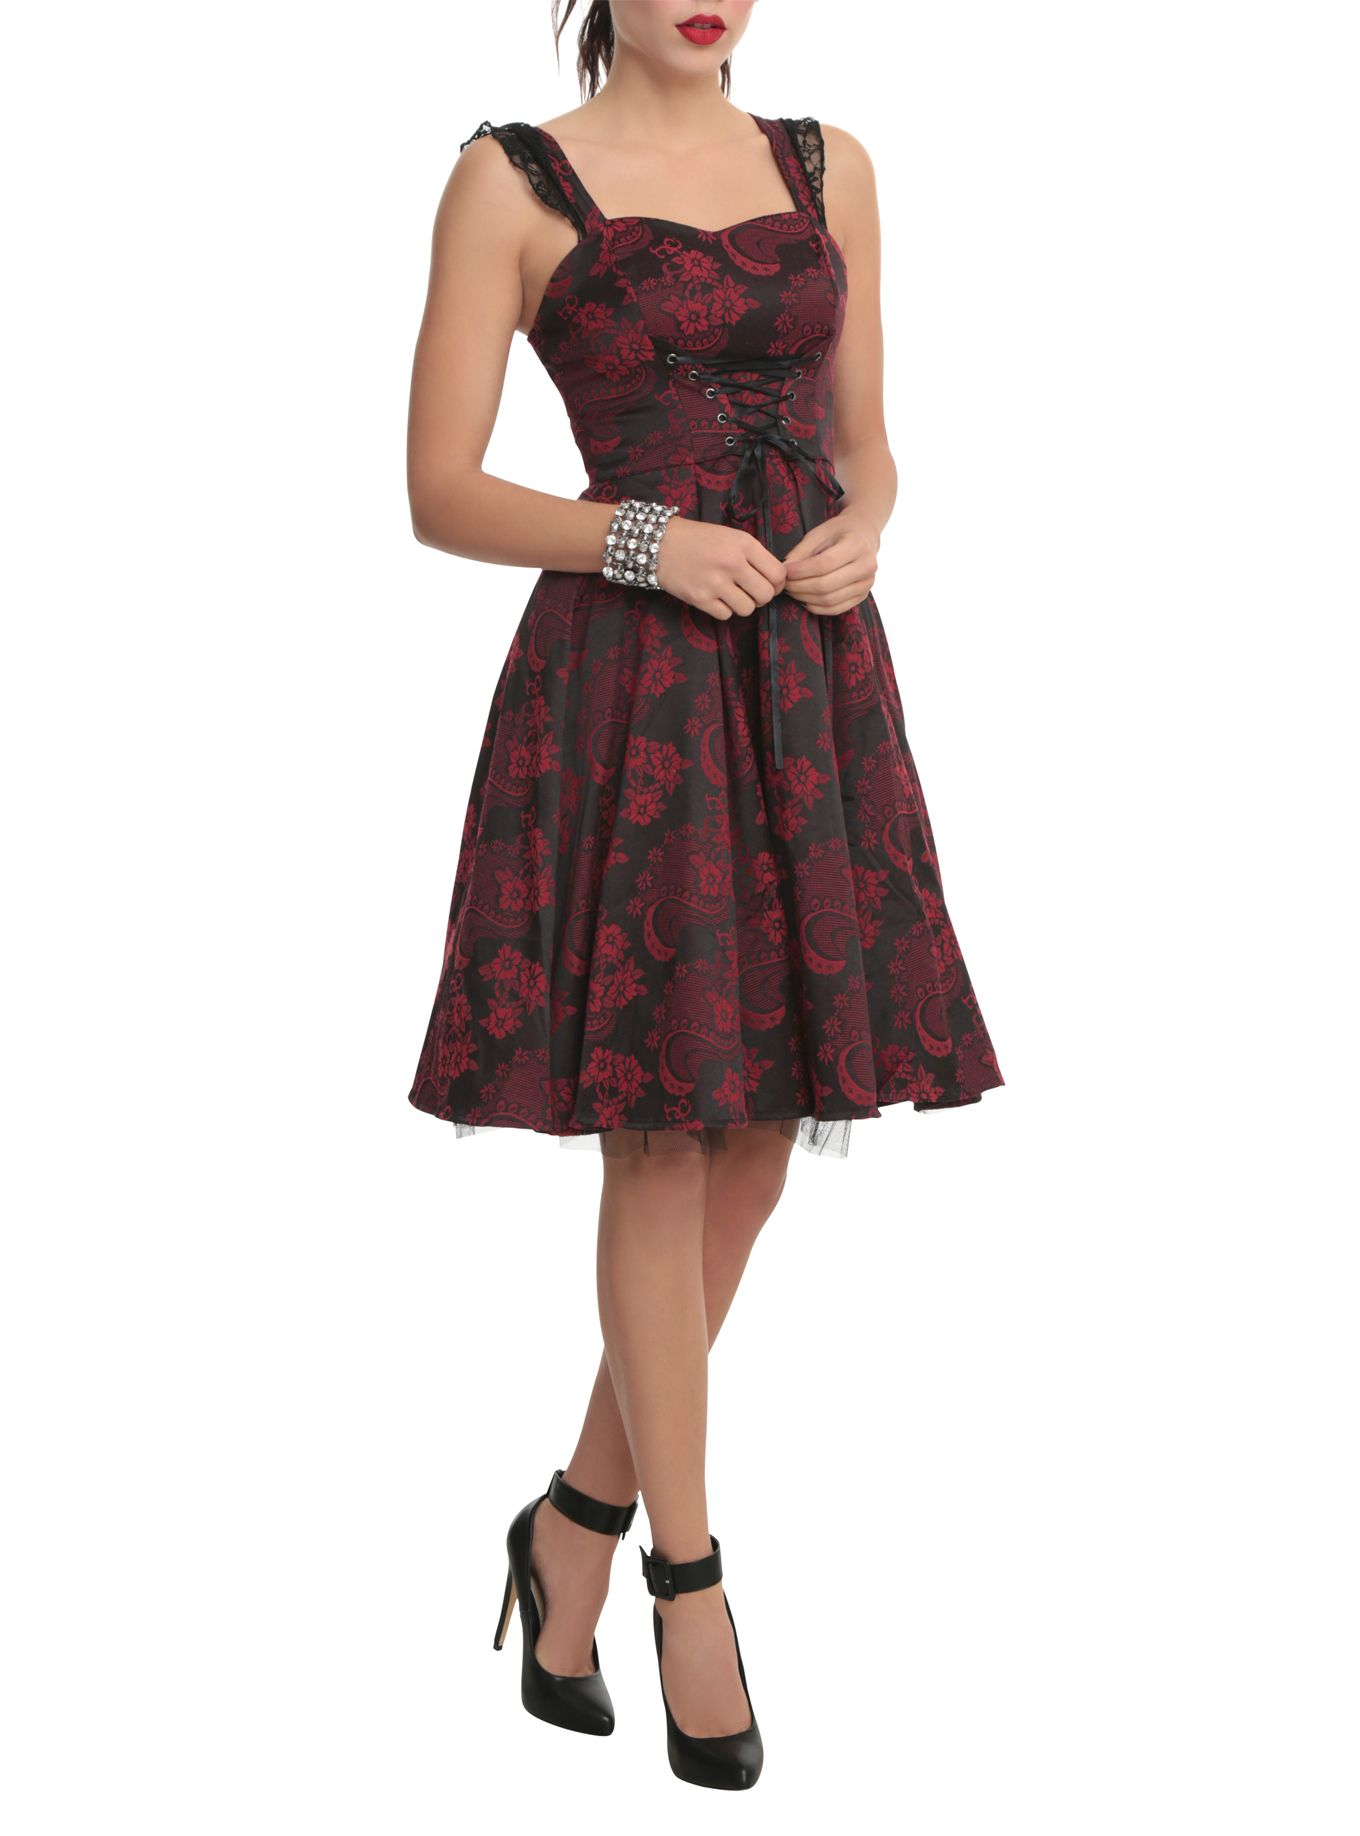 Red And Black Brocade Lace Up Dress Dressed To Kill Pinterest